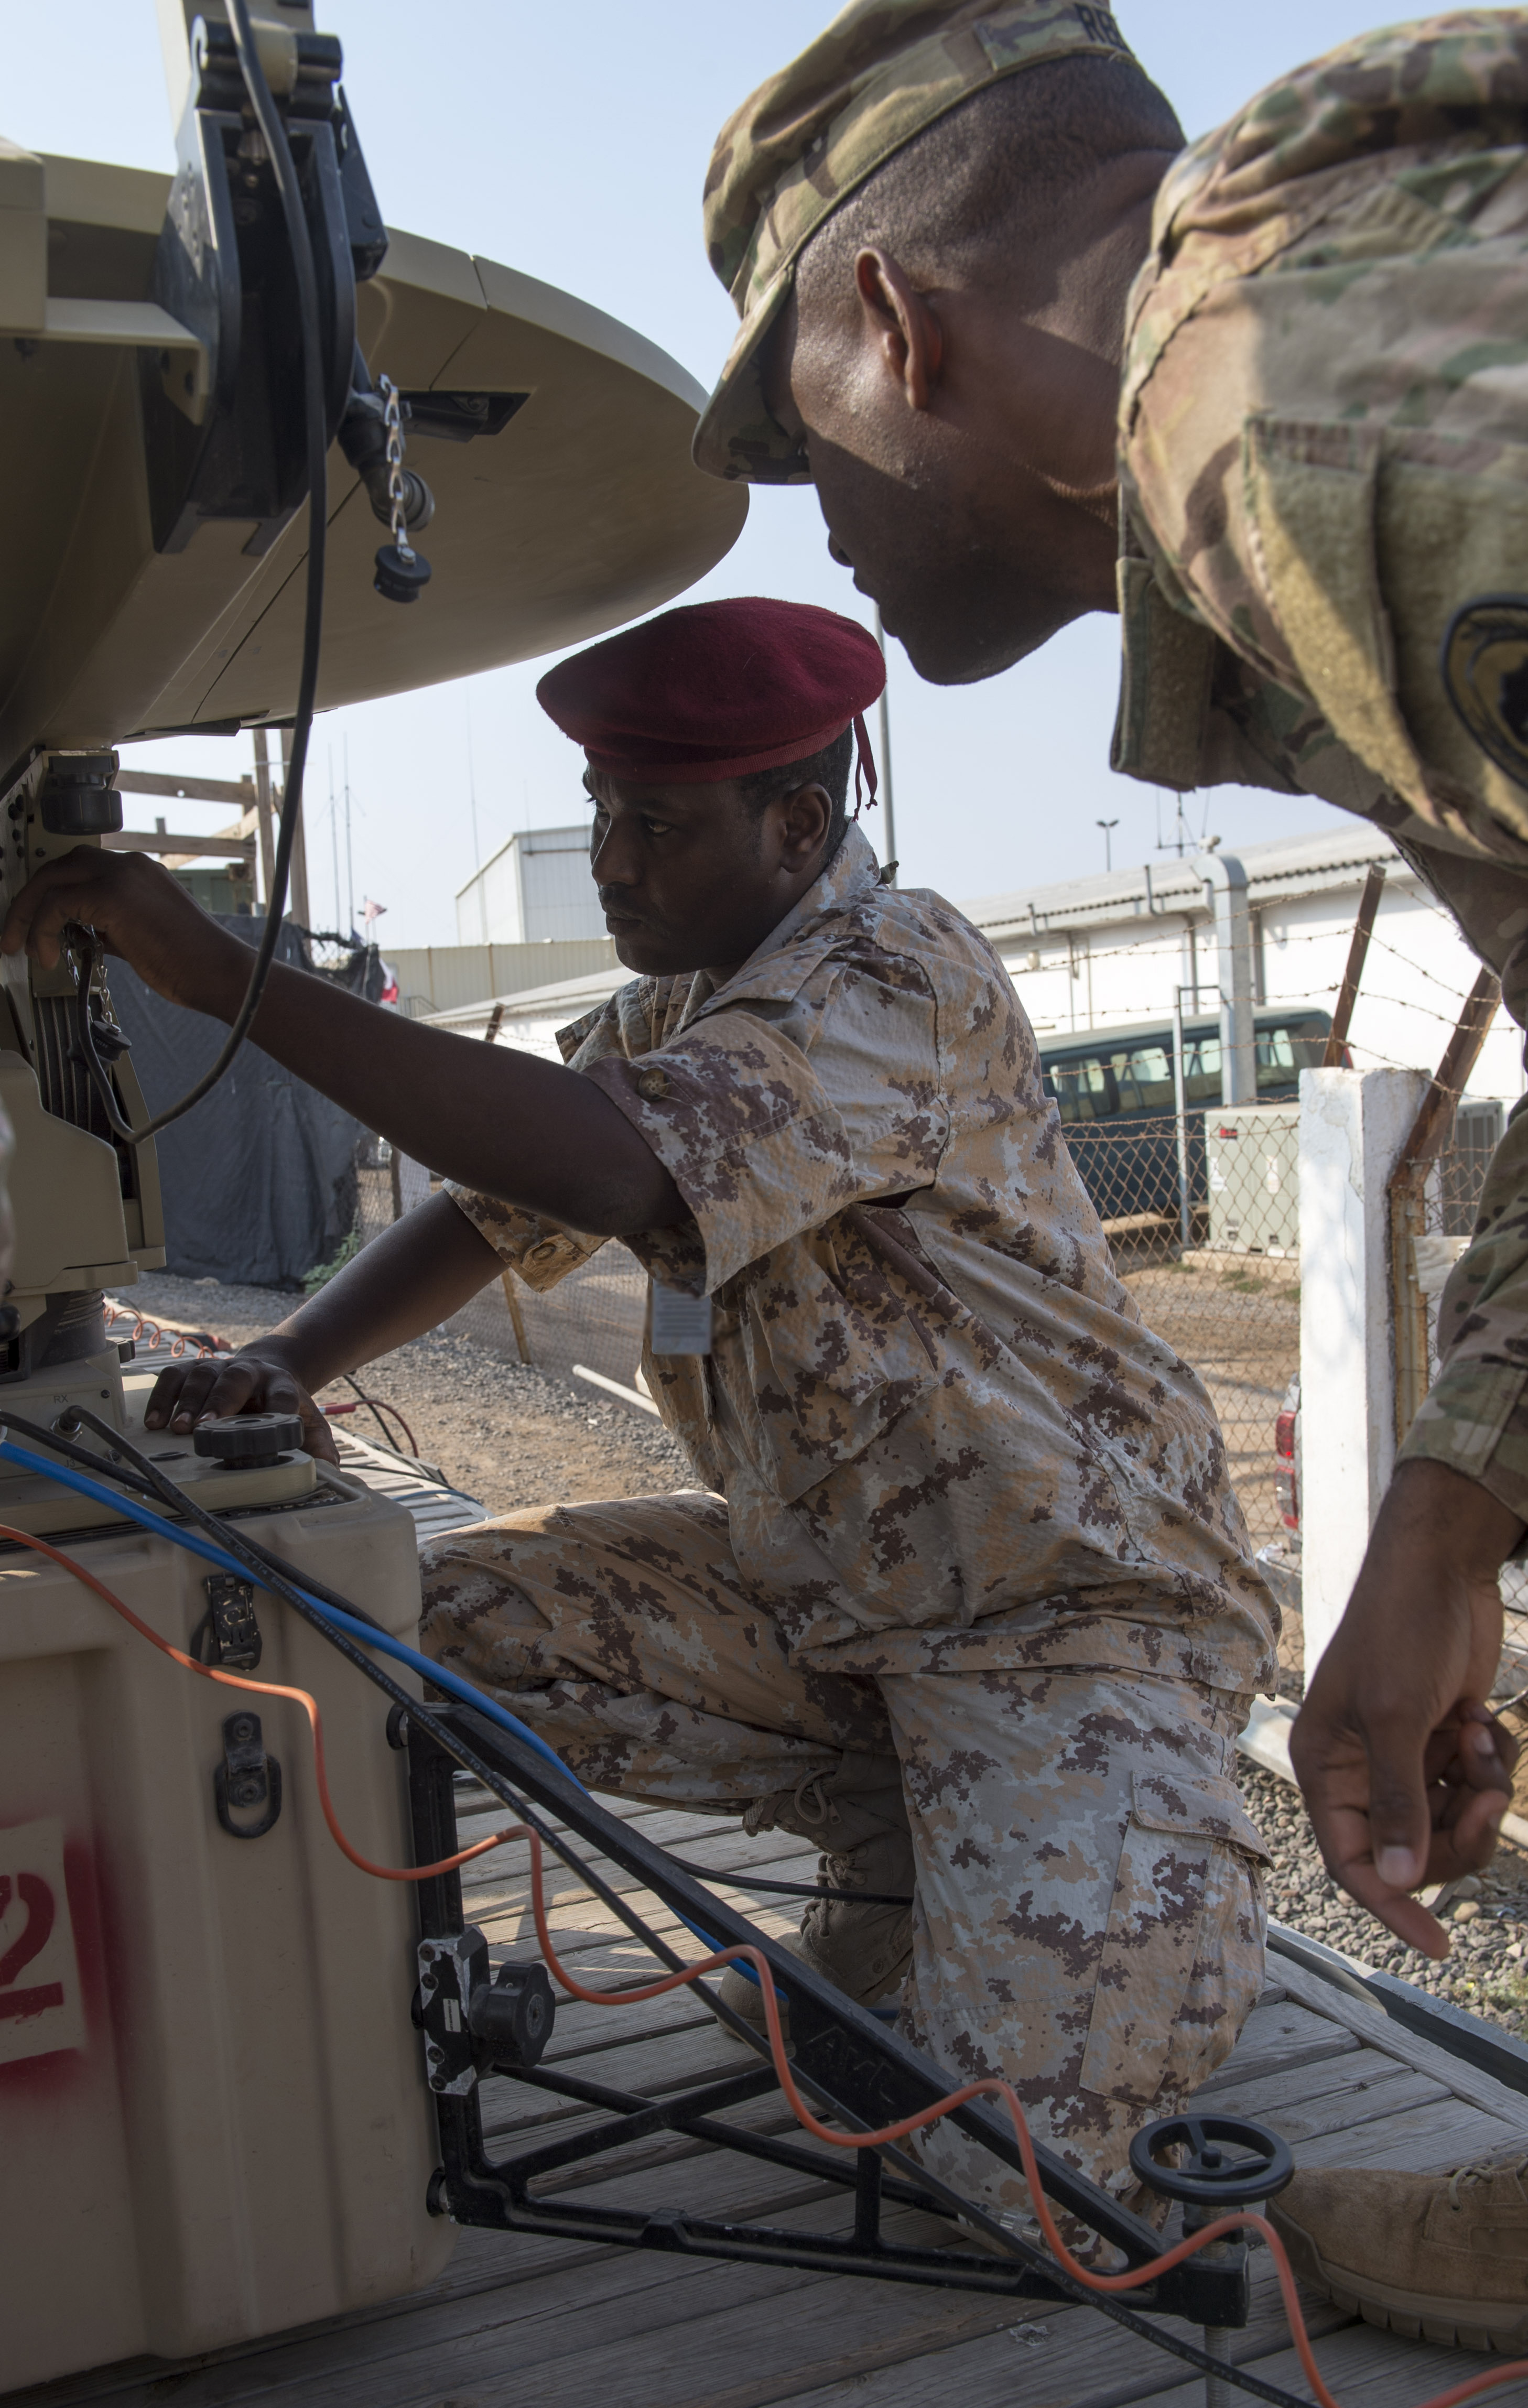 U.S. Army Spc. William Reed, a multisystem transmission operator and maintainer assigned to the Combined Joint Task Force - Horn of Africa (CJTF-HOA) Communications Directorate, watches as a service member of the Djibouti Armed Forces (FAD) sets up an antenna during a military-to-military exchange course at Camp Lemonnier, Djibouti, Jan. 8, 2018. Throughout a two-week period, communications experts advised Djiboutian service members on how to set up, operate, maintain, and troubleshoot network equipment to increase communication capabilities between African Union Mission in Somalia forces. (U.S. Air Force photo illustration by Staff Sgt. Timothy Moore)